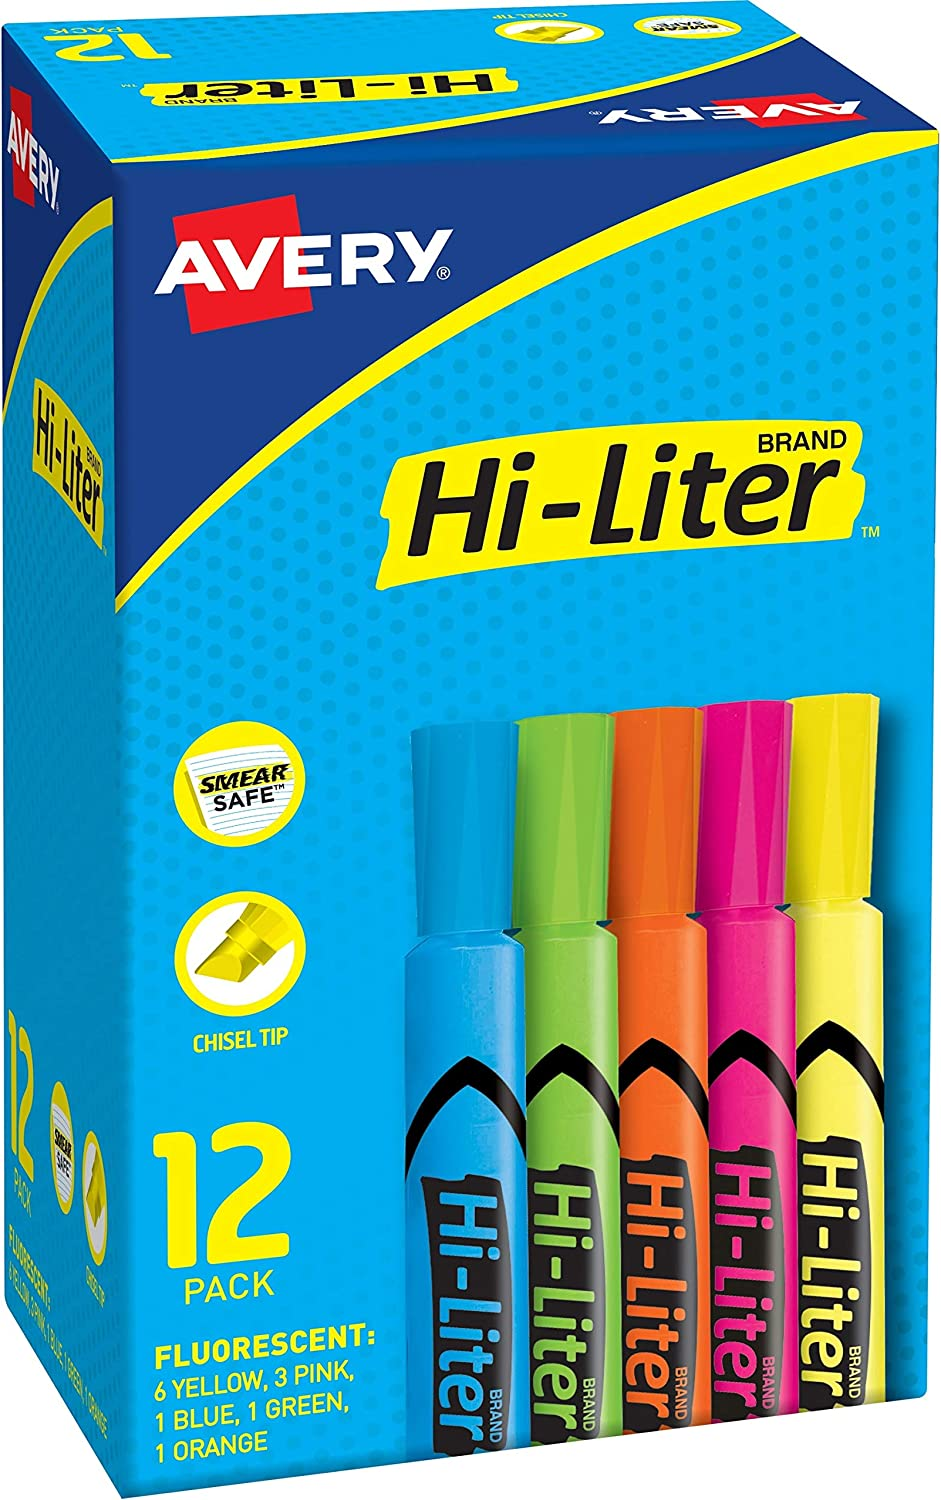 AVERY 98034 Hi-Liter Desk-Style Highlighters, Smear Safe Ink, Chisel Tip is Great for Sketch Book Art, 12 Assorted Colors : Highlighters : Office Products